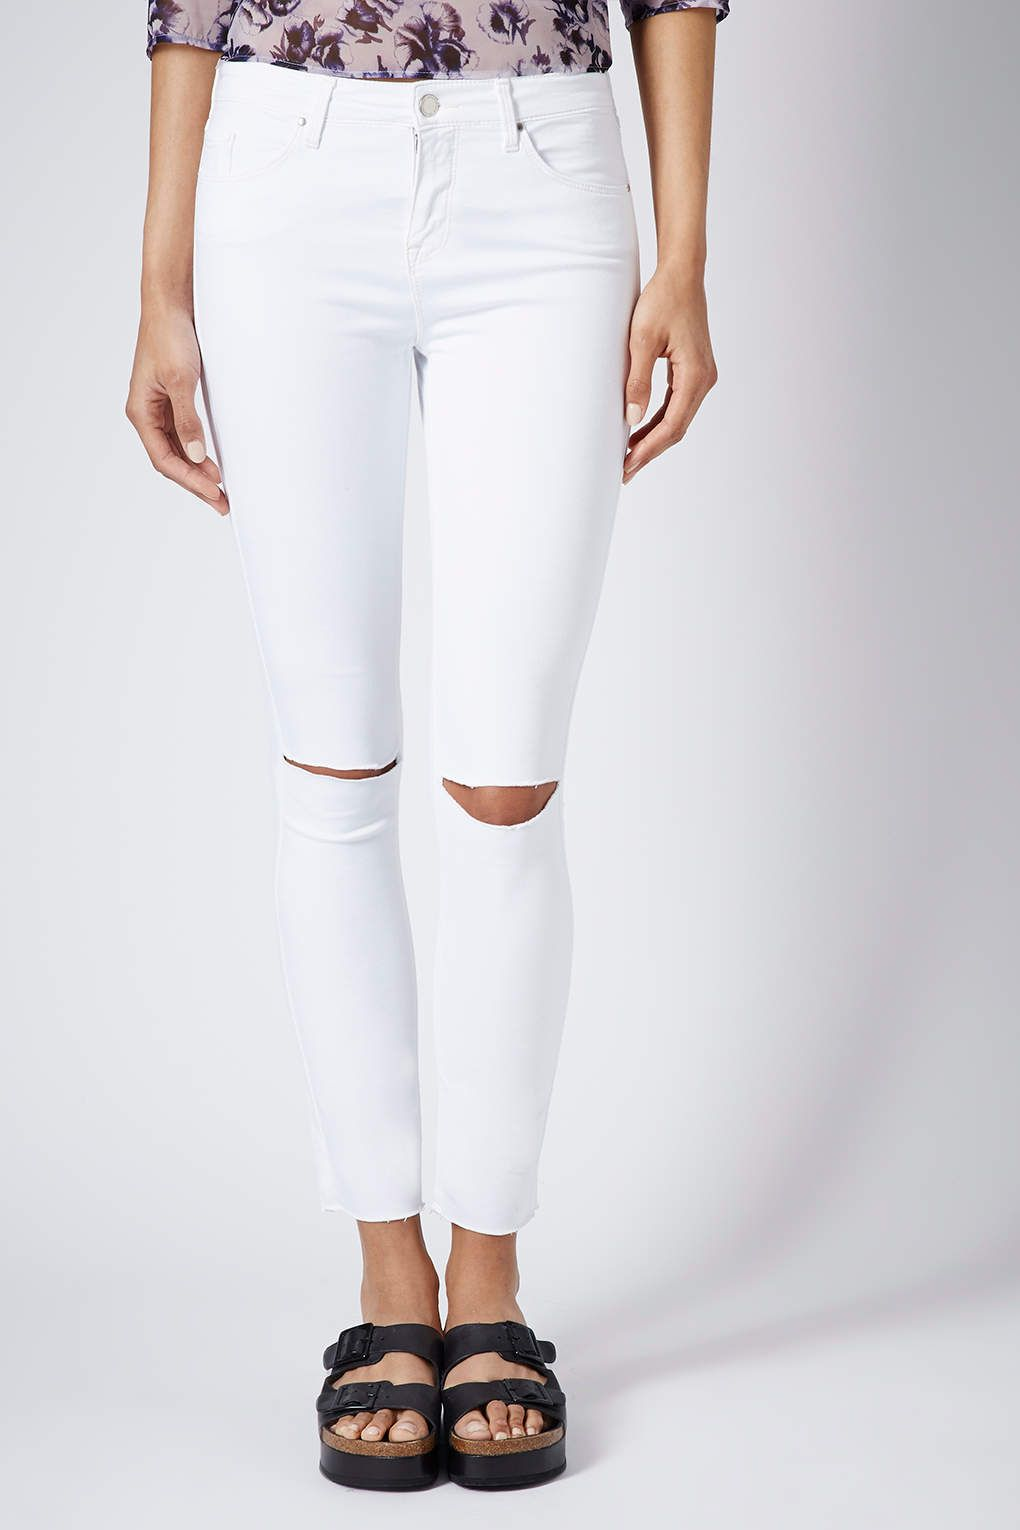 Awesome White Jeans for Women : White Jean For Women | Awesome ...